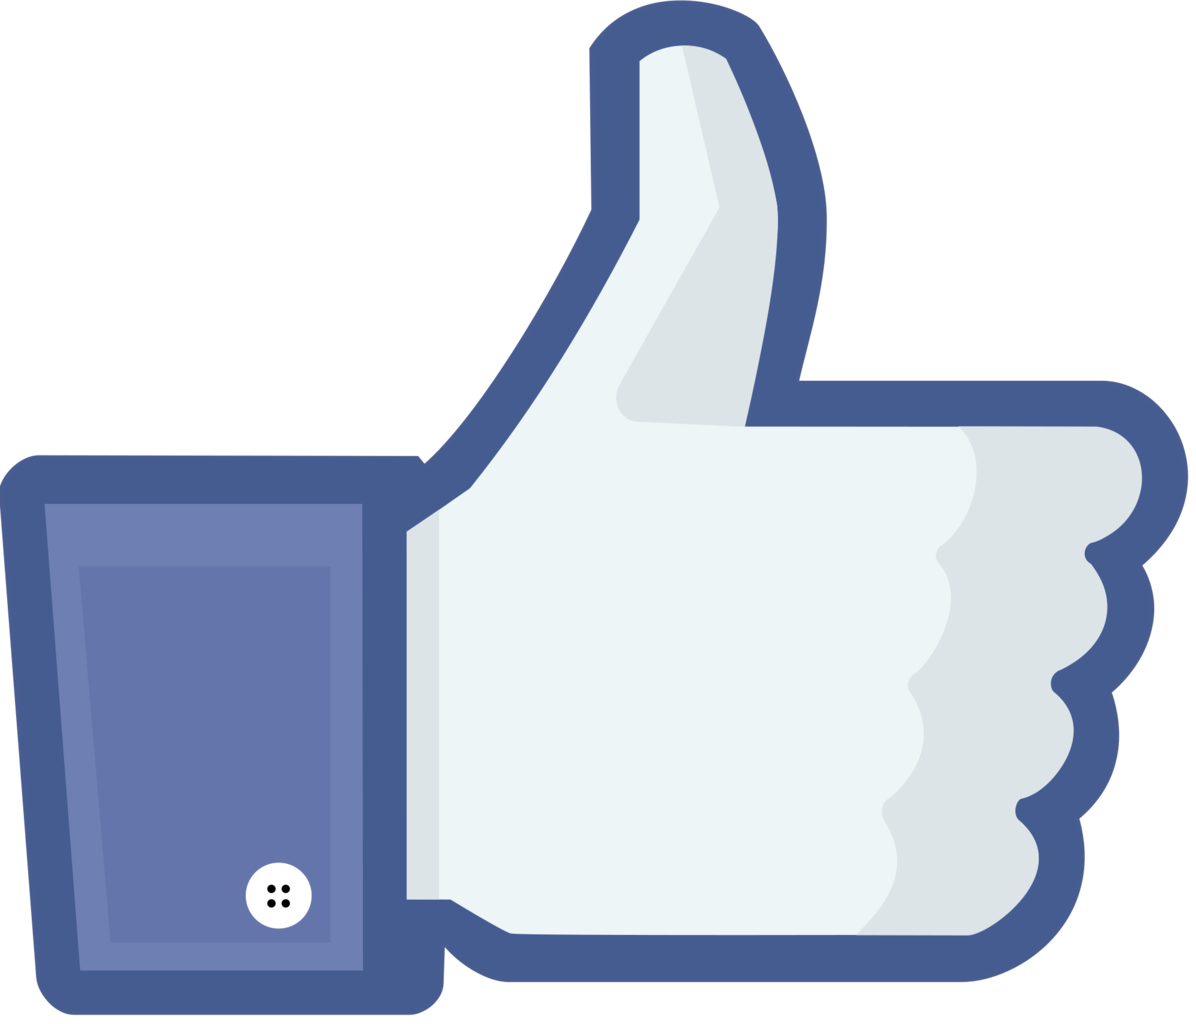 facebook like thumb png logo #5774